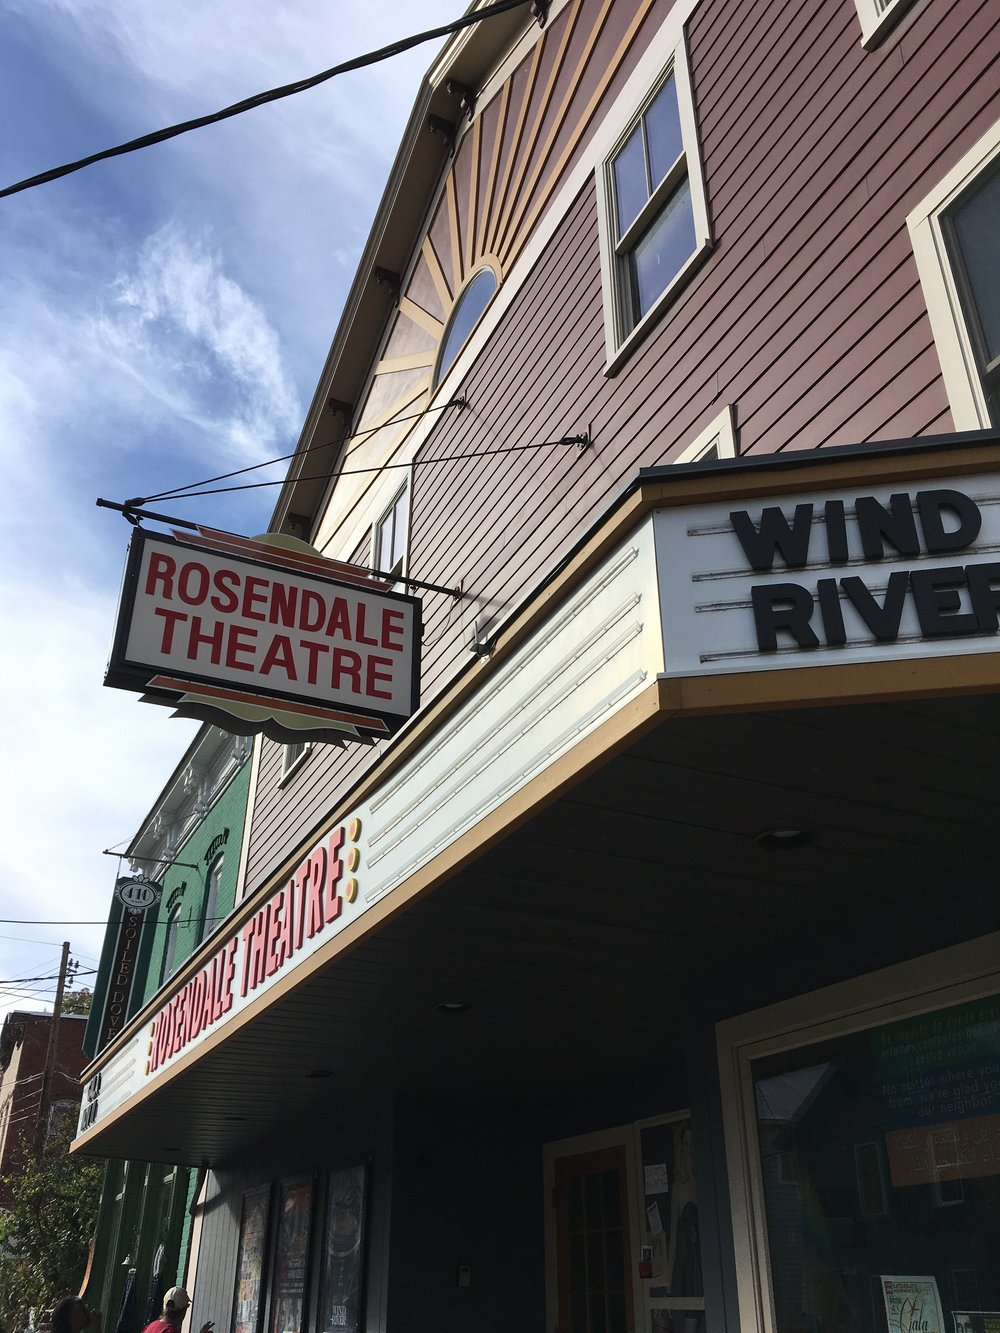 Funky Rosendale theater